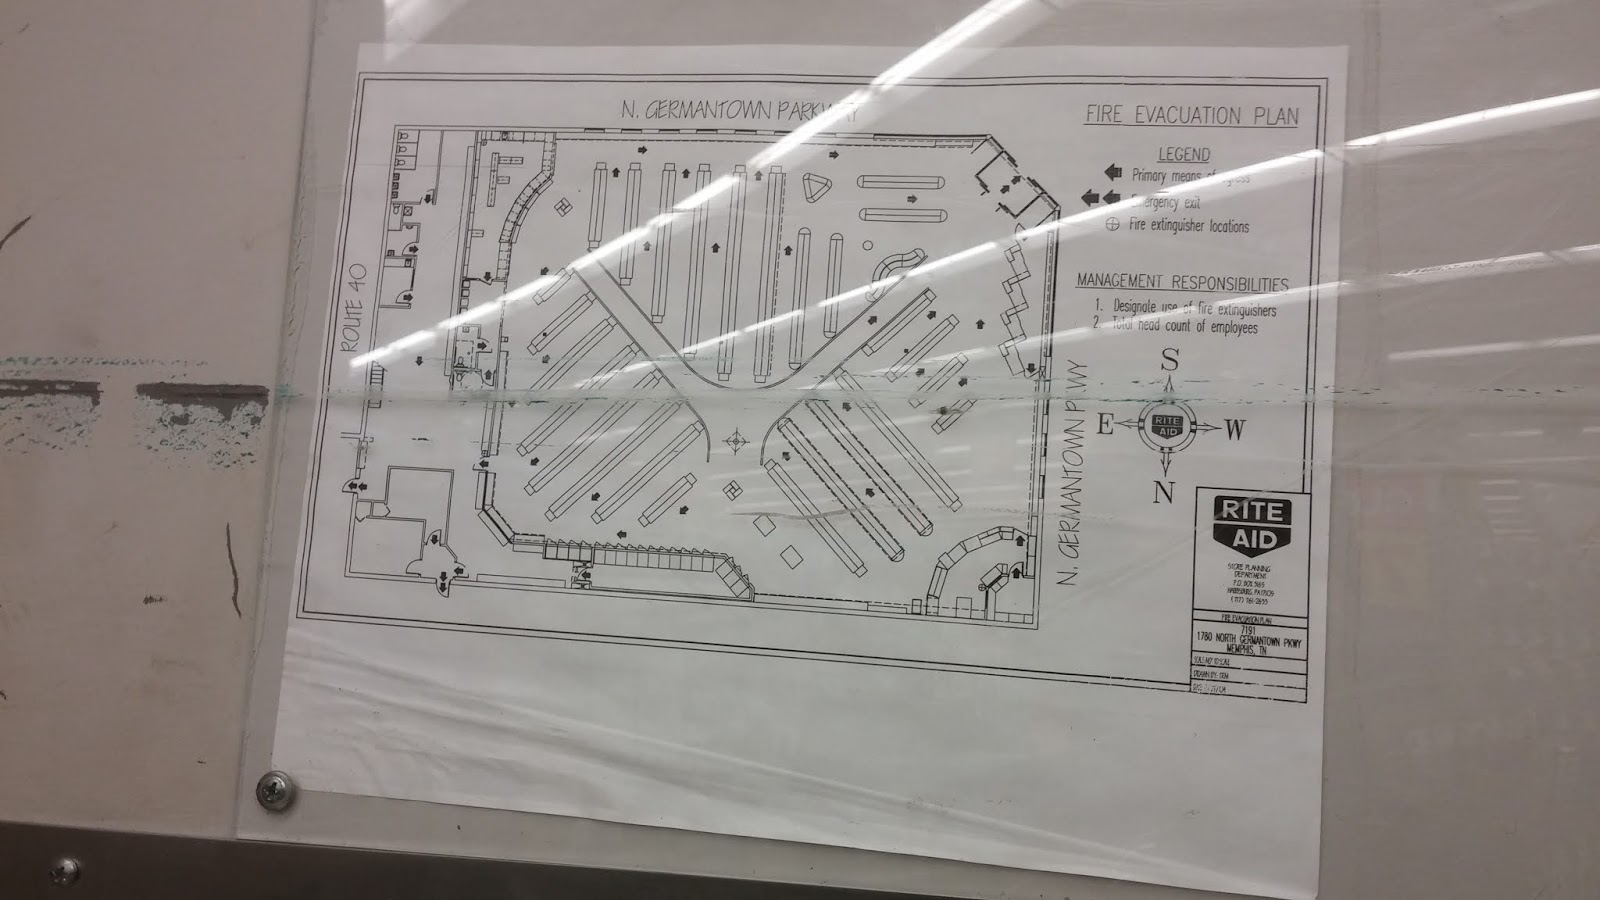 small resolution of here s the floorplan of this cordova rite aid as seen posted to one of the emergency exit doors the date listed for this schematic is sometime in 2004